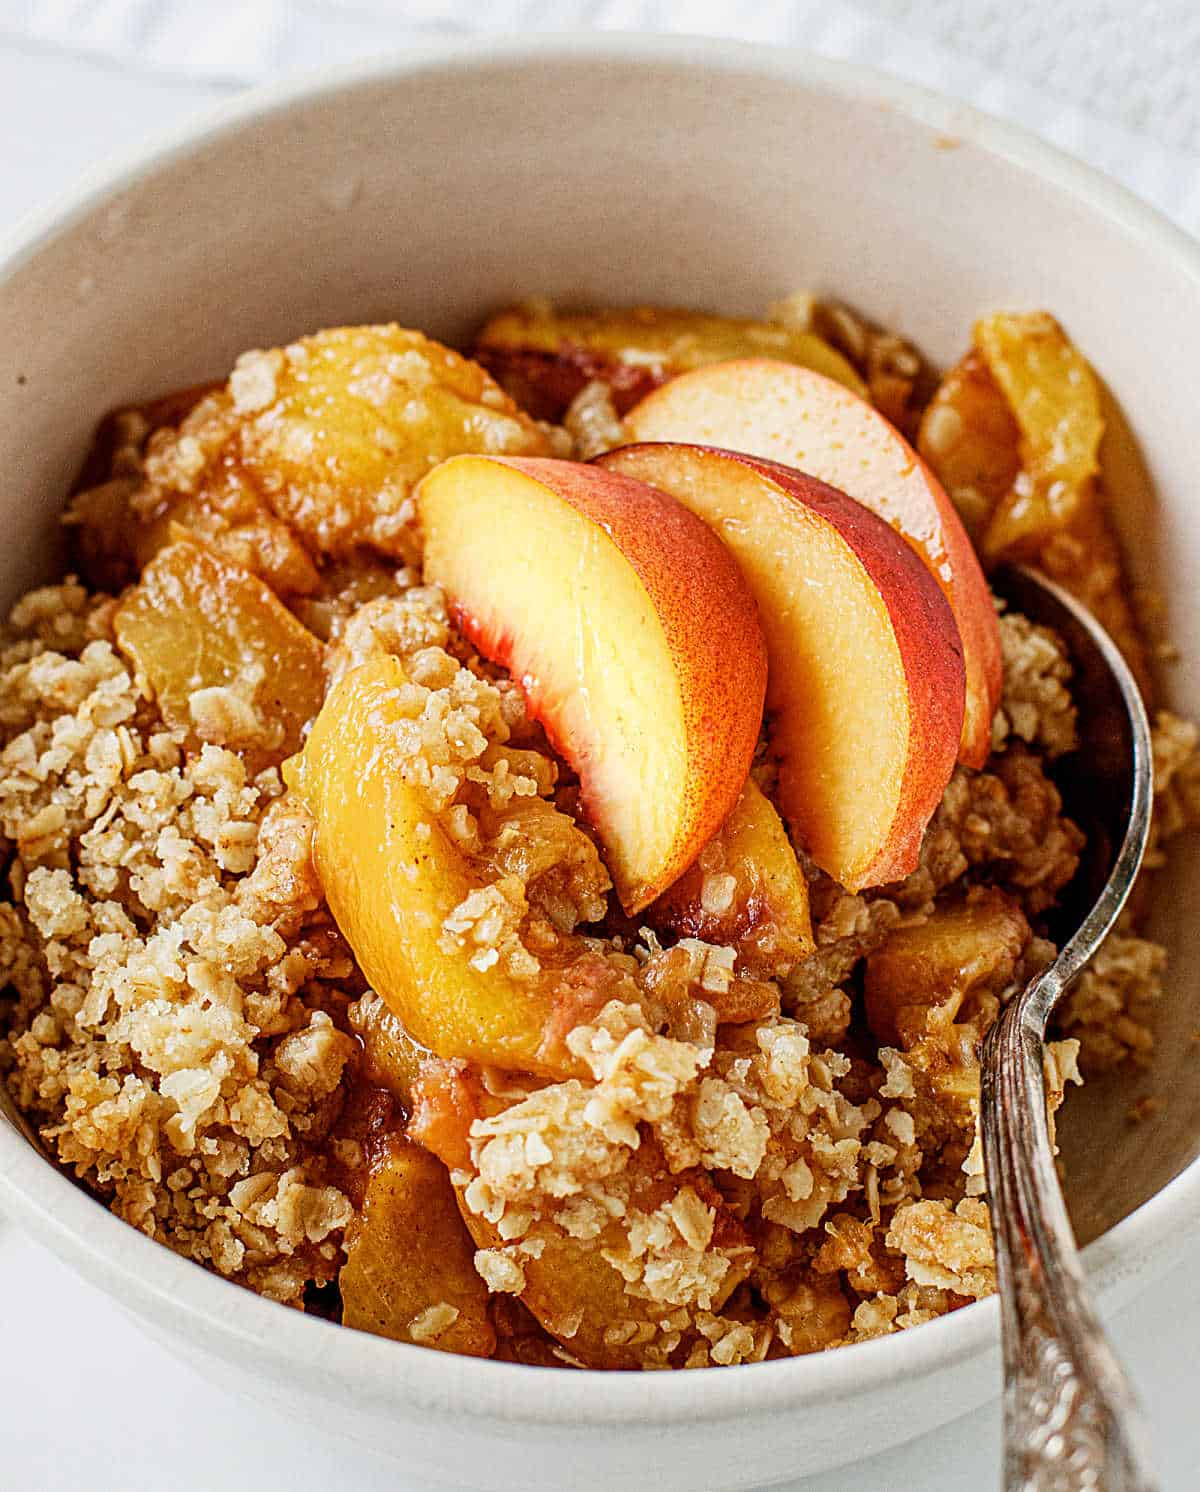 White bowl with peach crisp serving and silver spoon inside